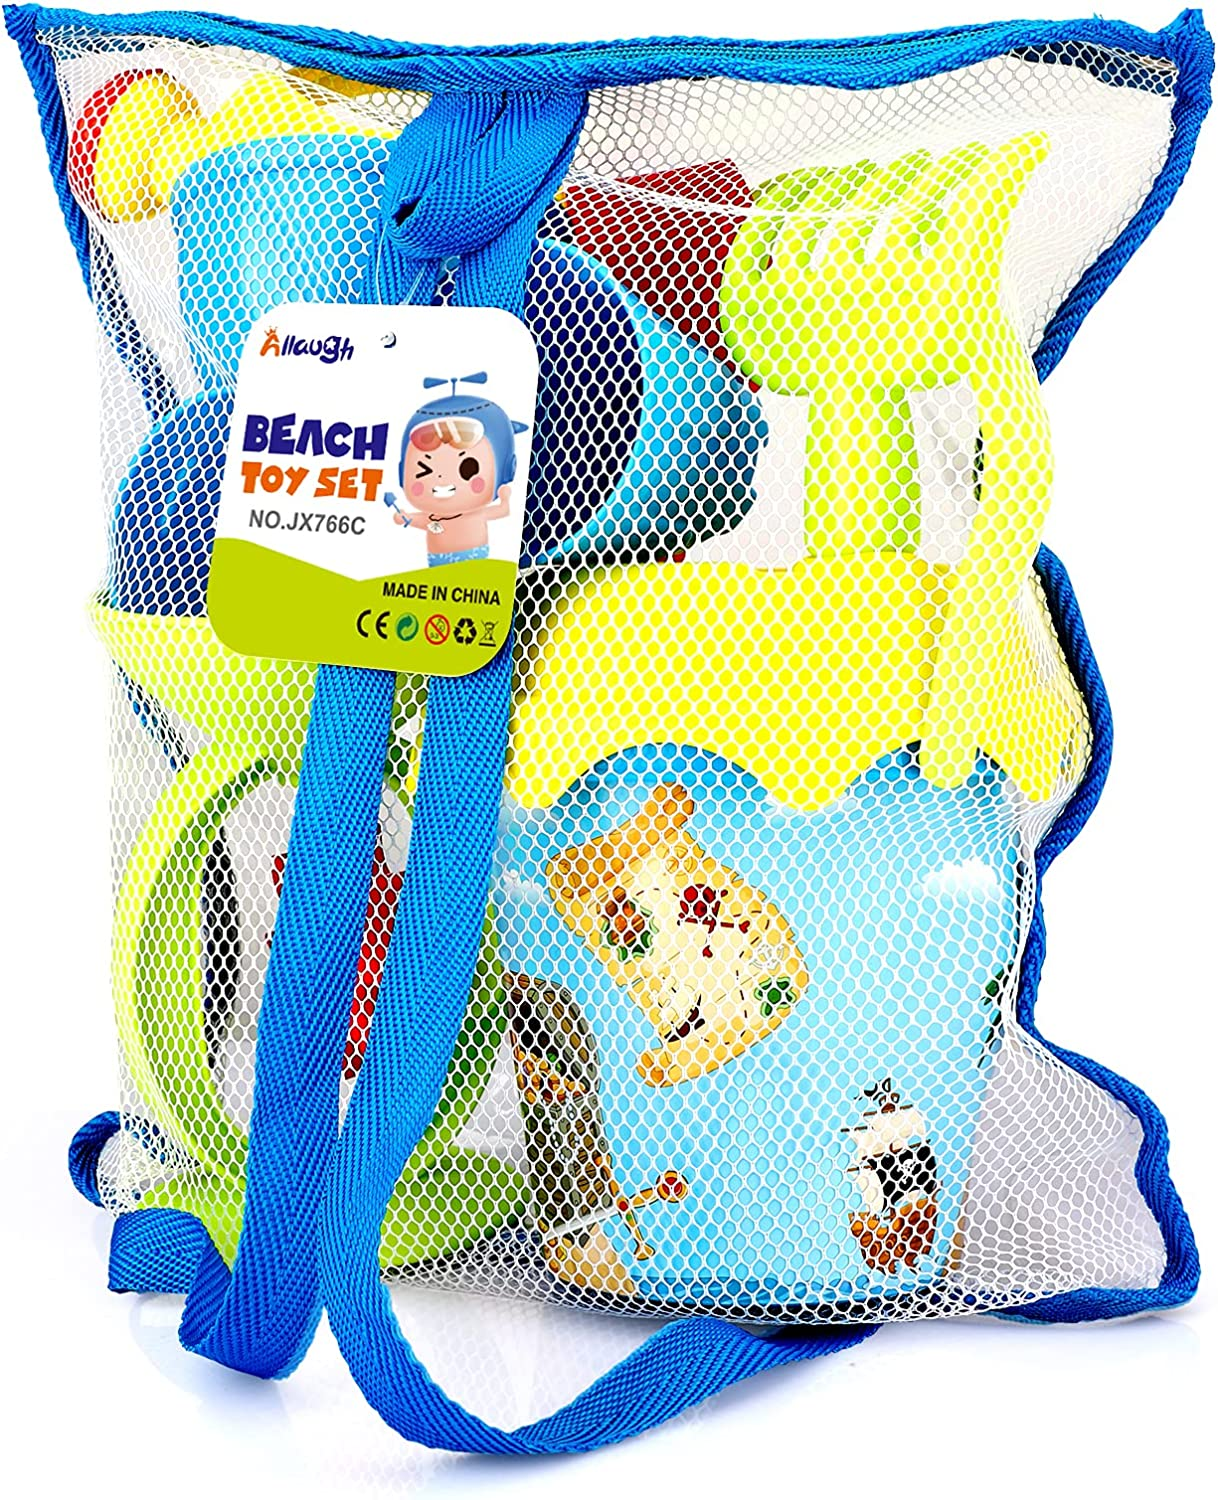 Allaugh Sand Toys Free shipping on posting Lowest price challenge reviews for Kids Pir Beach 7Pcs with Wheel